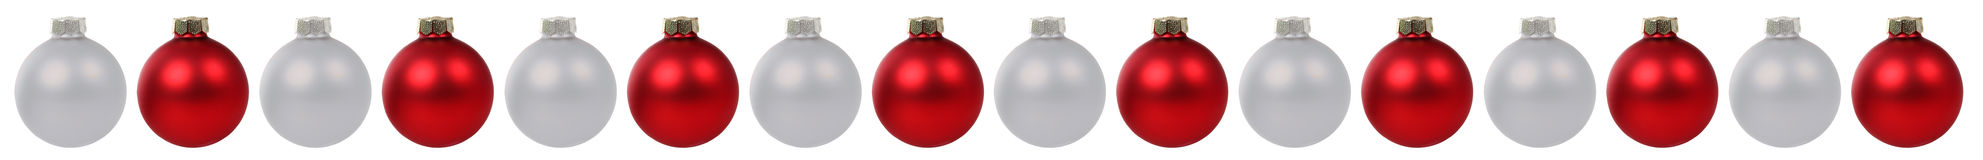 Christmas balls baubles red silver decoration border in a row is Royalty Free Stock Photo